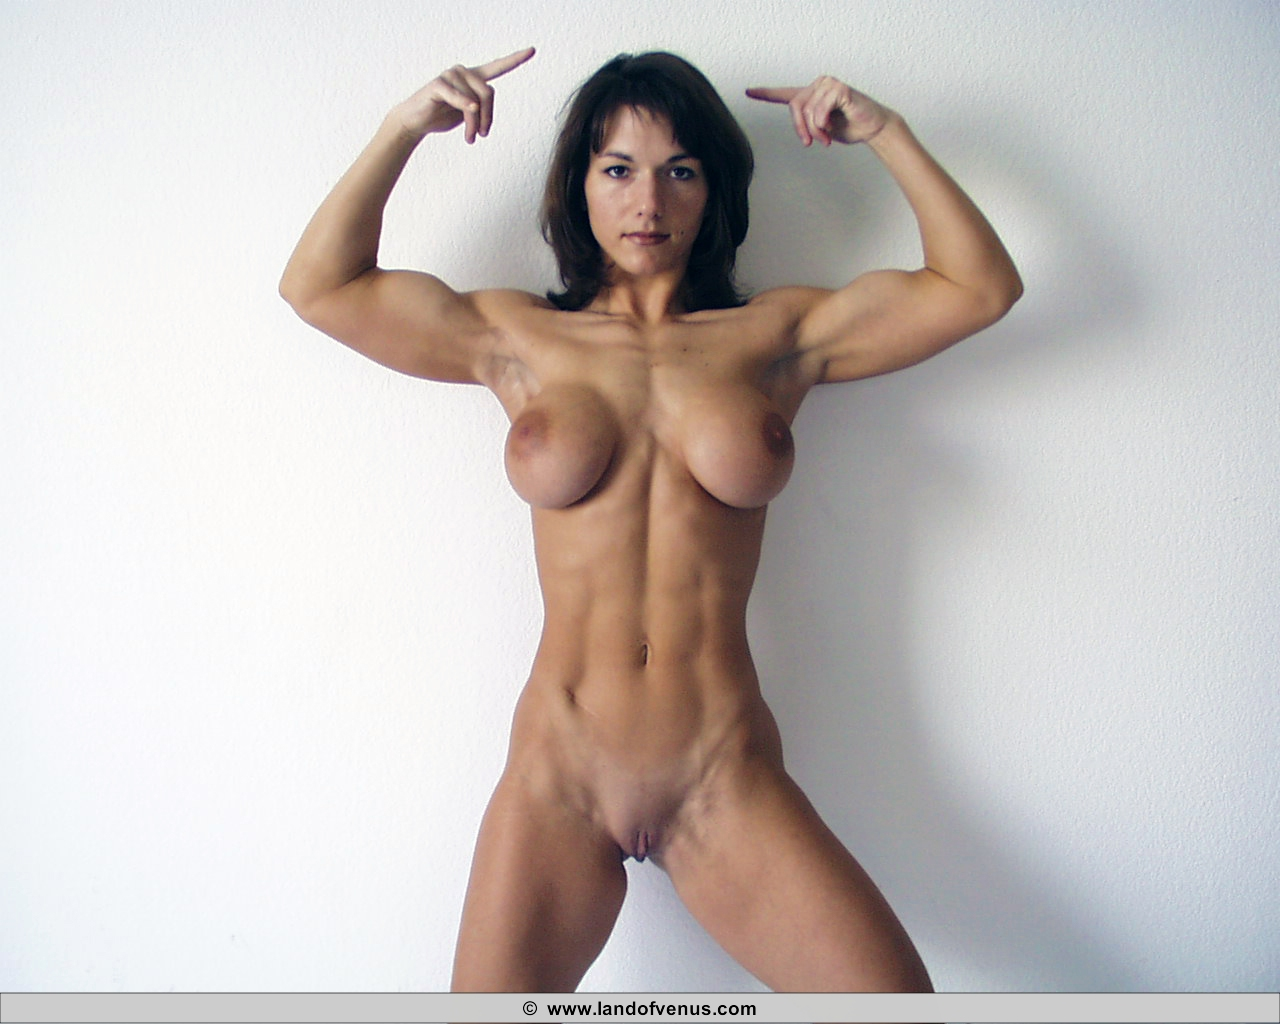 Nude Female Fitness Model Naked